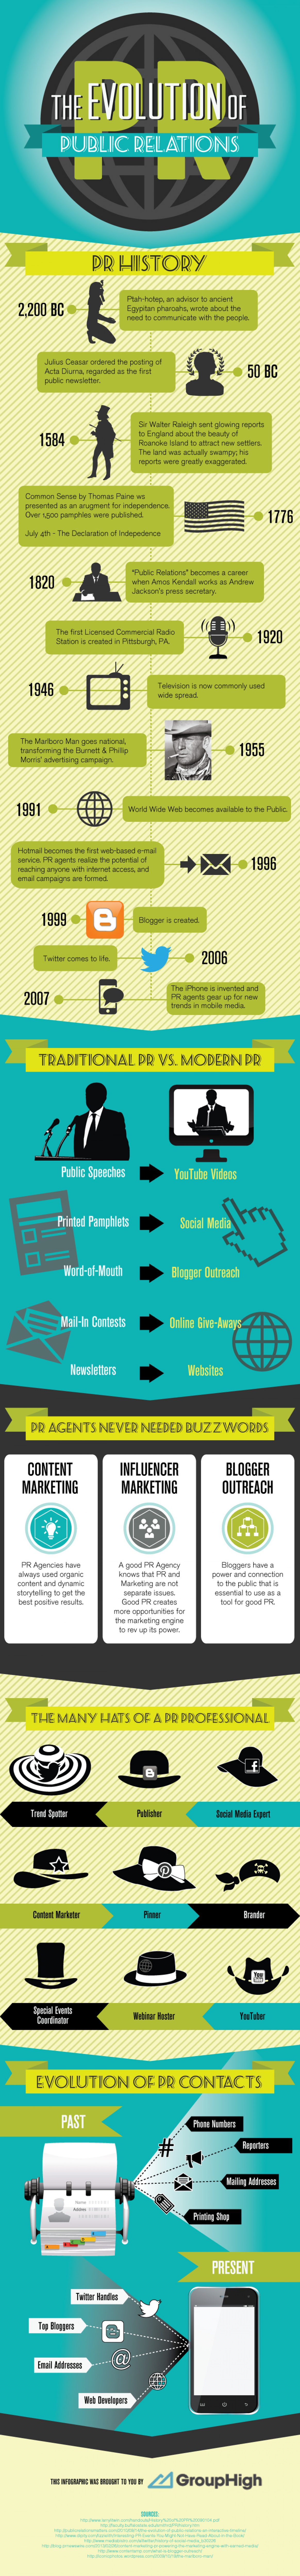 The Evolution of PR Infographic